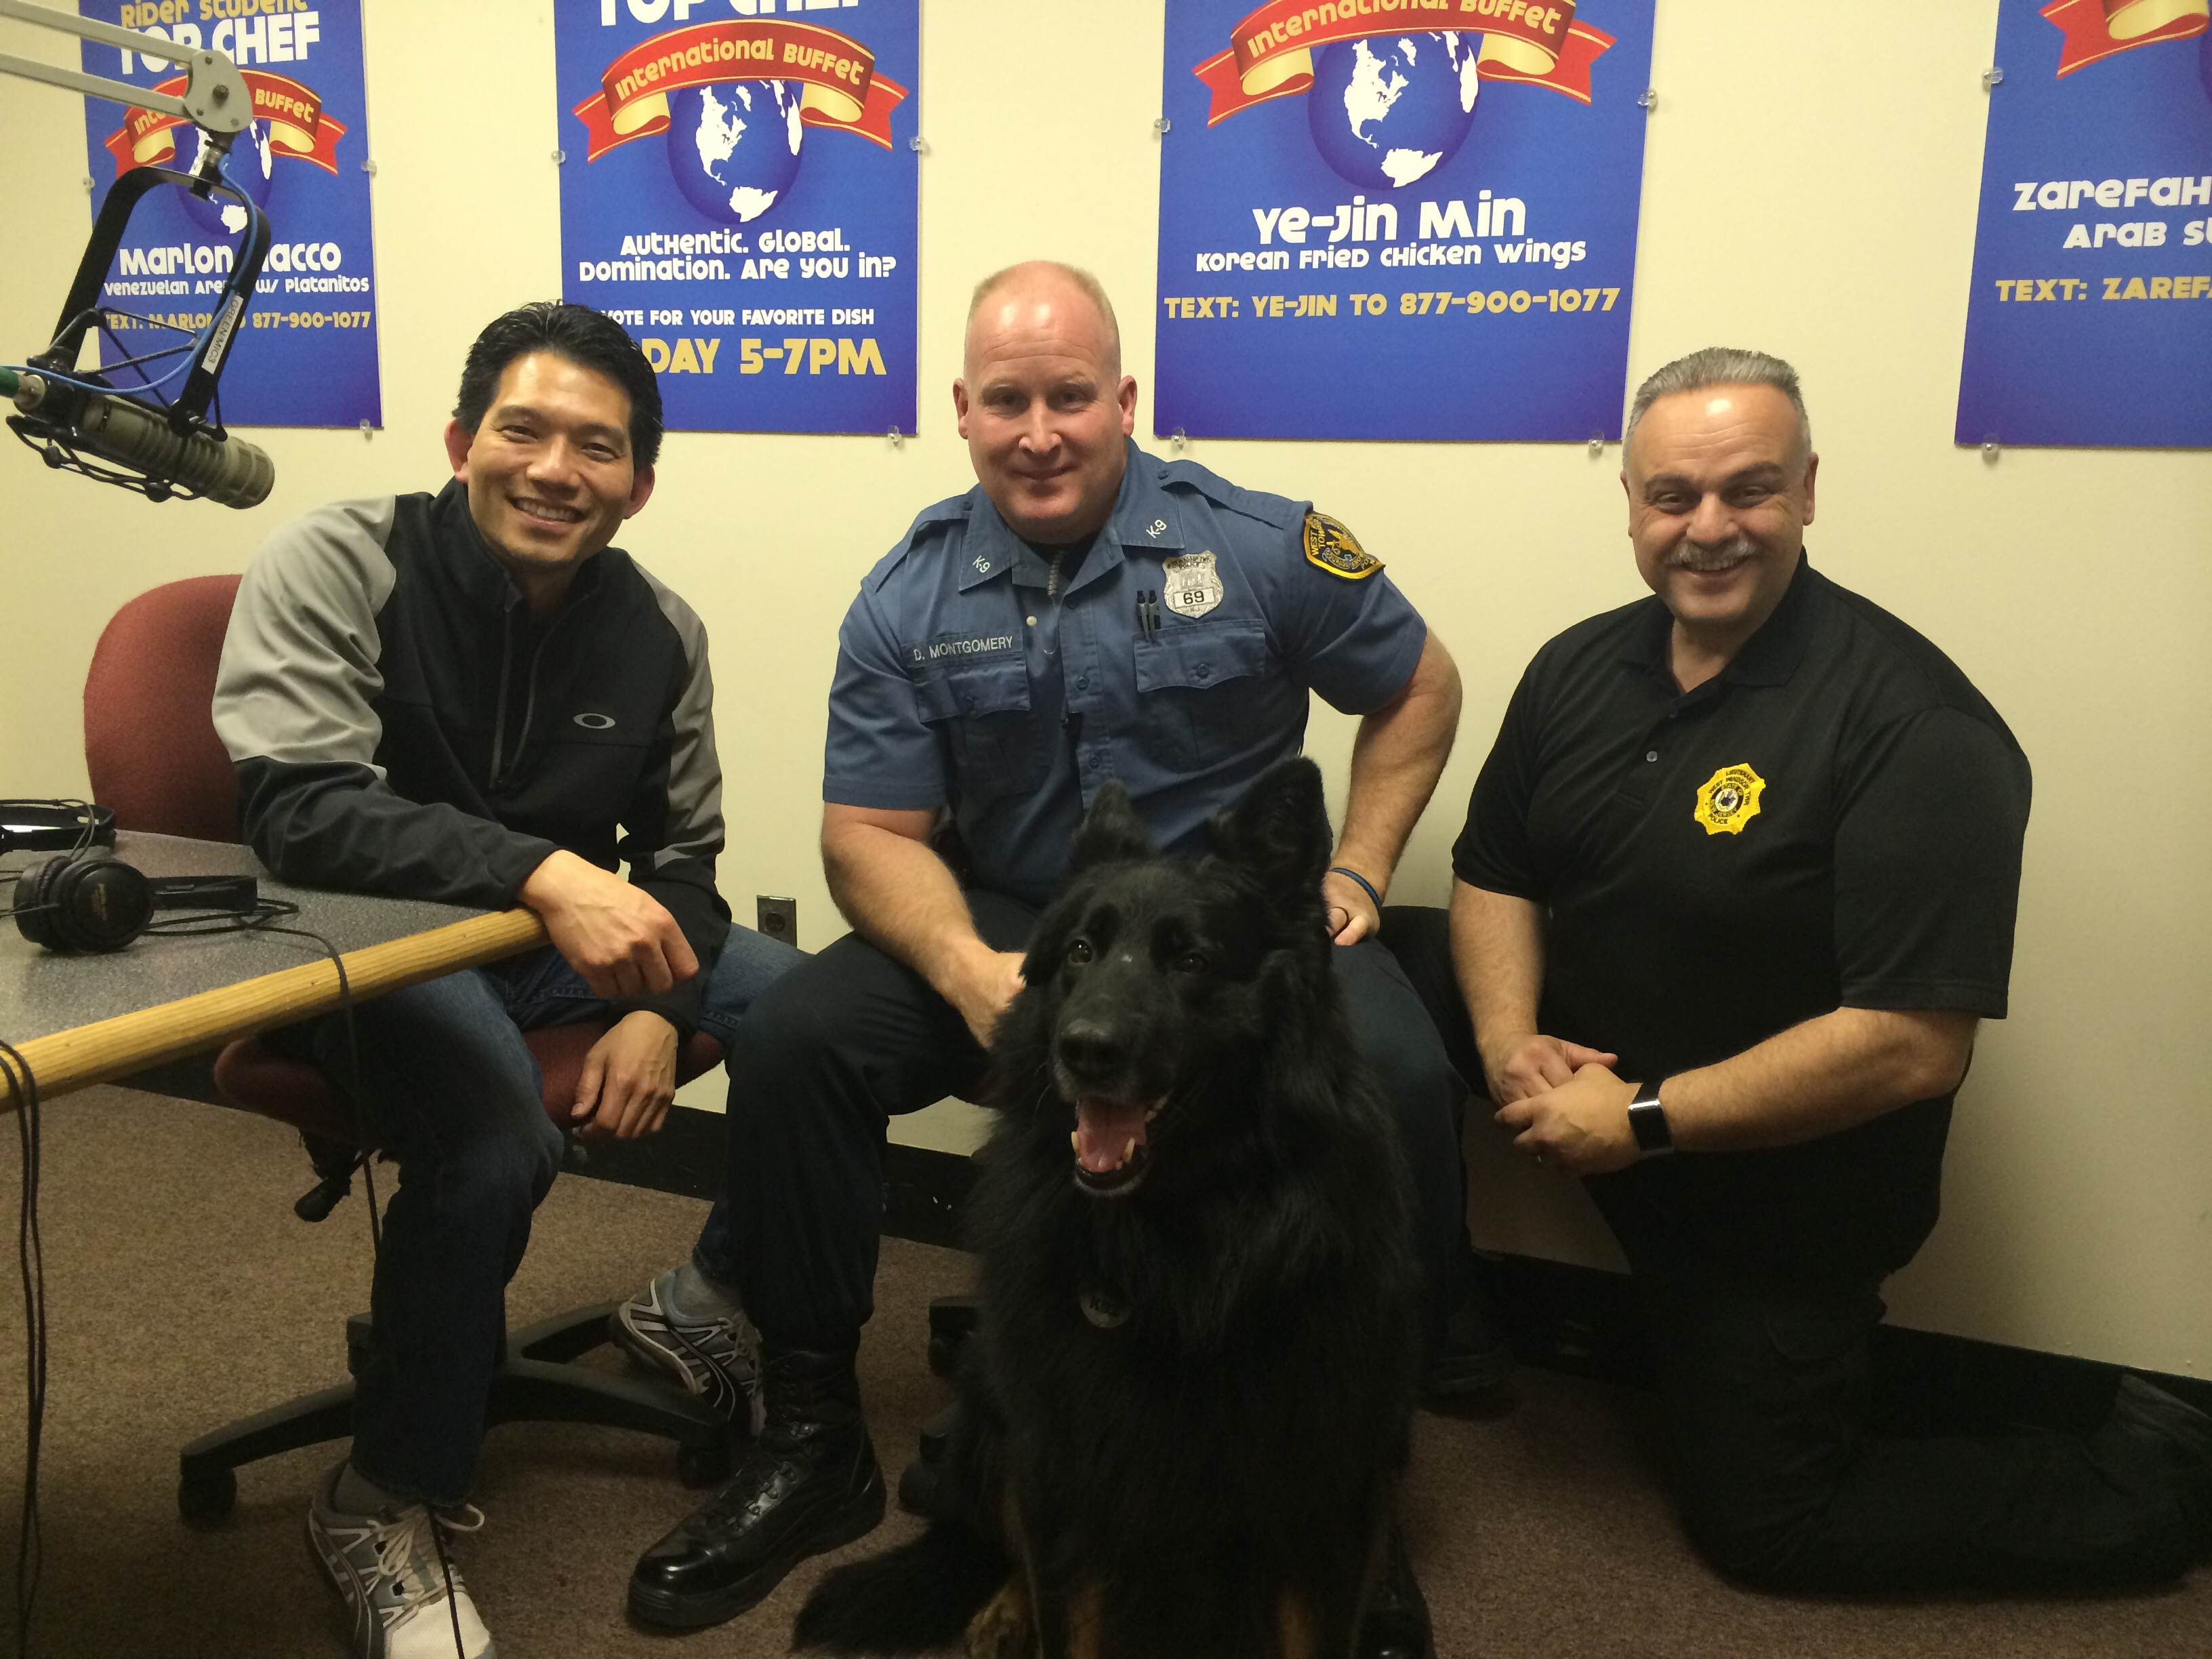 May 2, 2015 – West Windsor Police Department comes to visit!